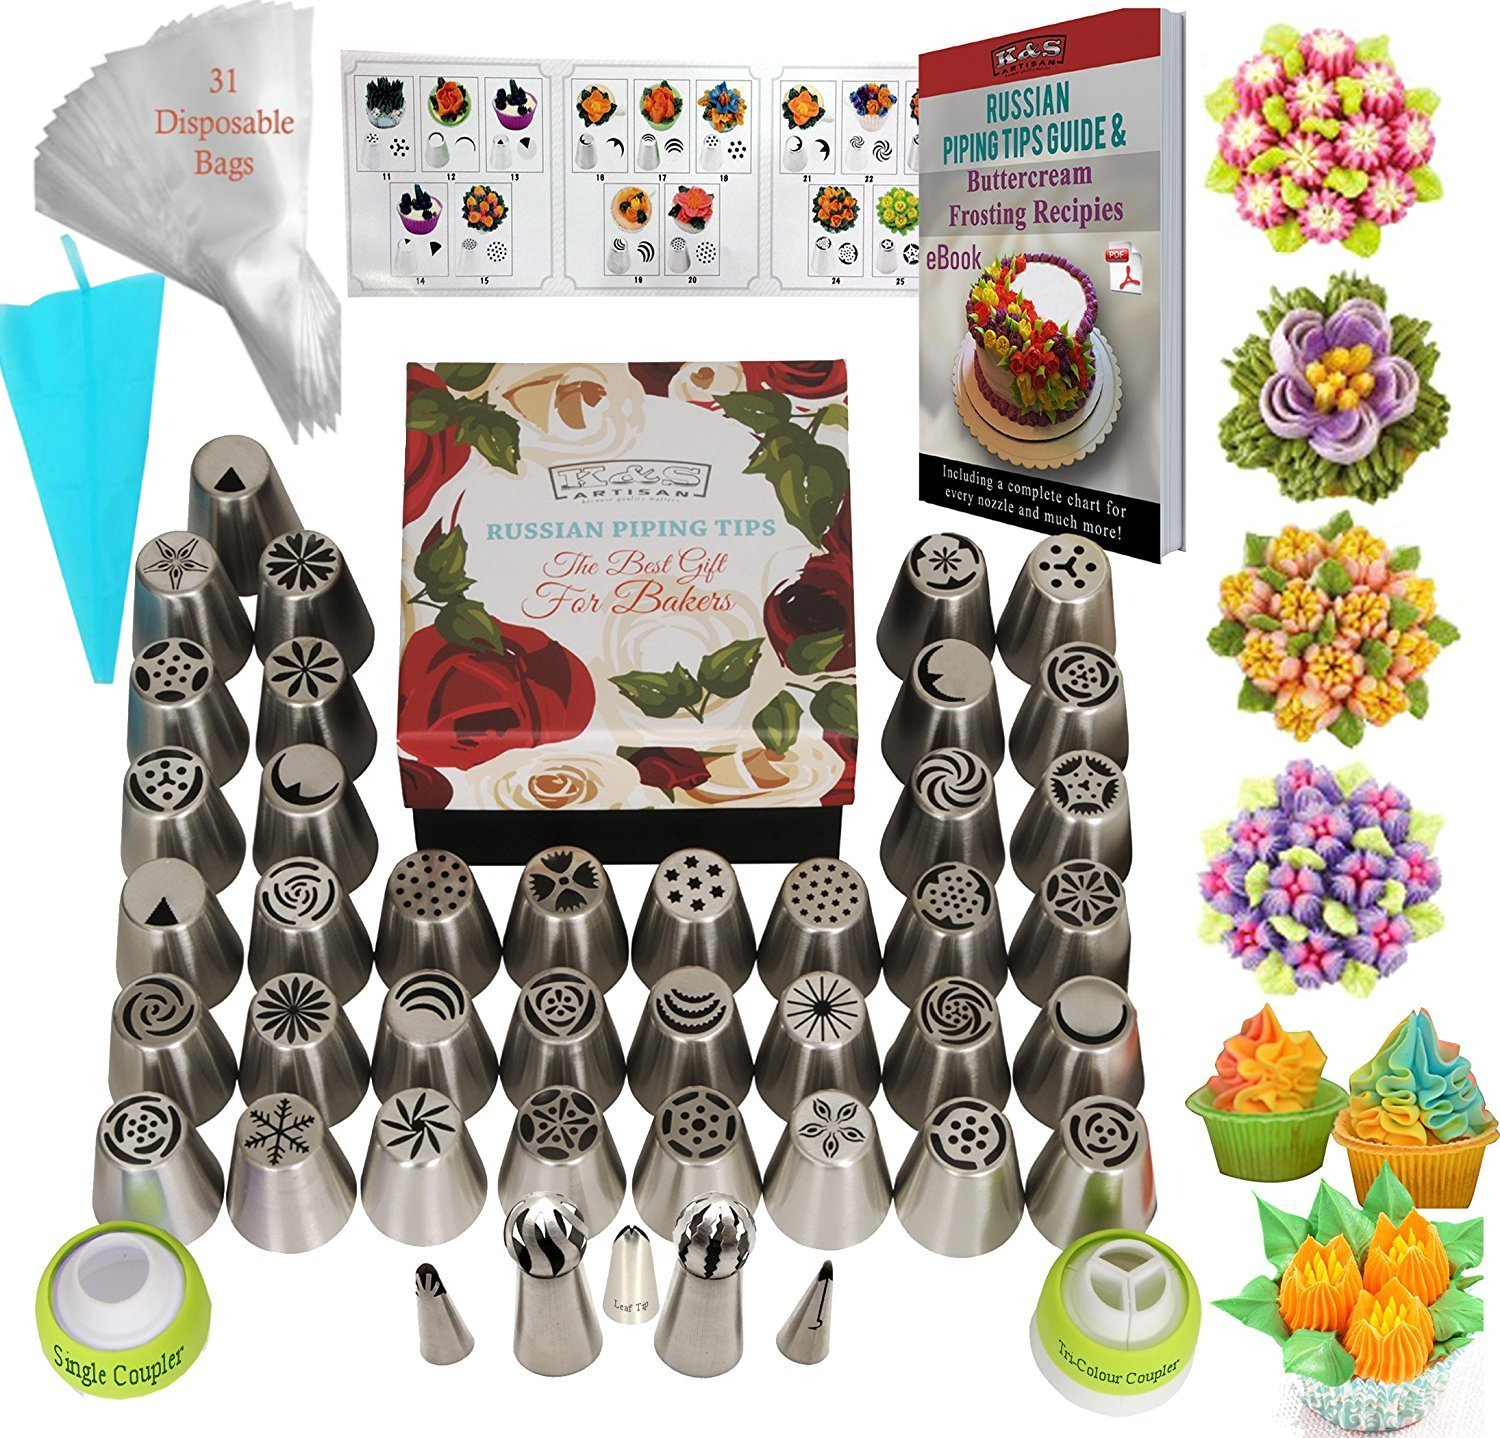 Russian Piping Tips Icing Flower Frosting tips 77 pcs Baking Supplies Set 42 Icing Nozzles 31 Baking Pastry Bags 2 Russian Ball Piping Tips Large Cupcake Decorating Kit DELUXE Russian Nozzles Set